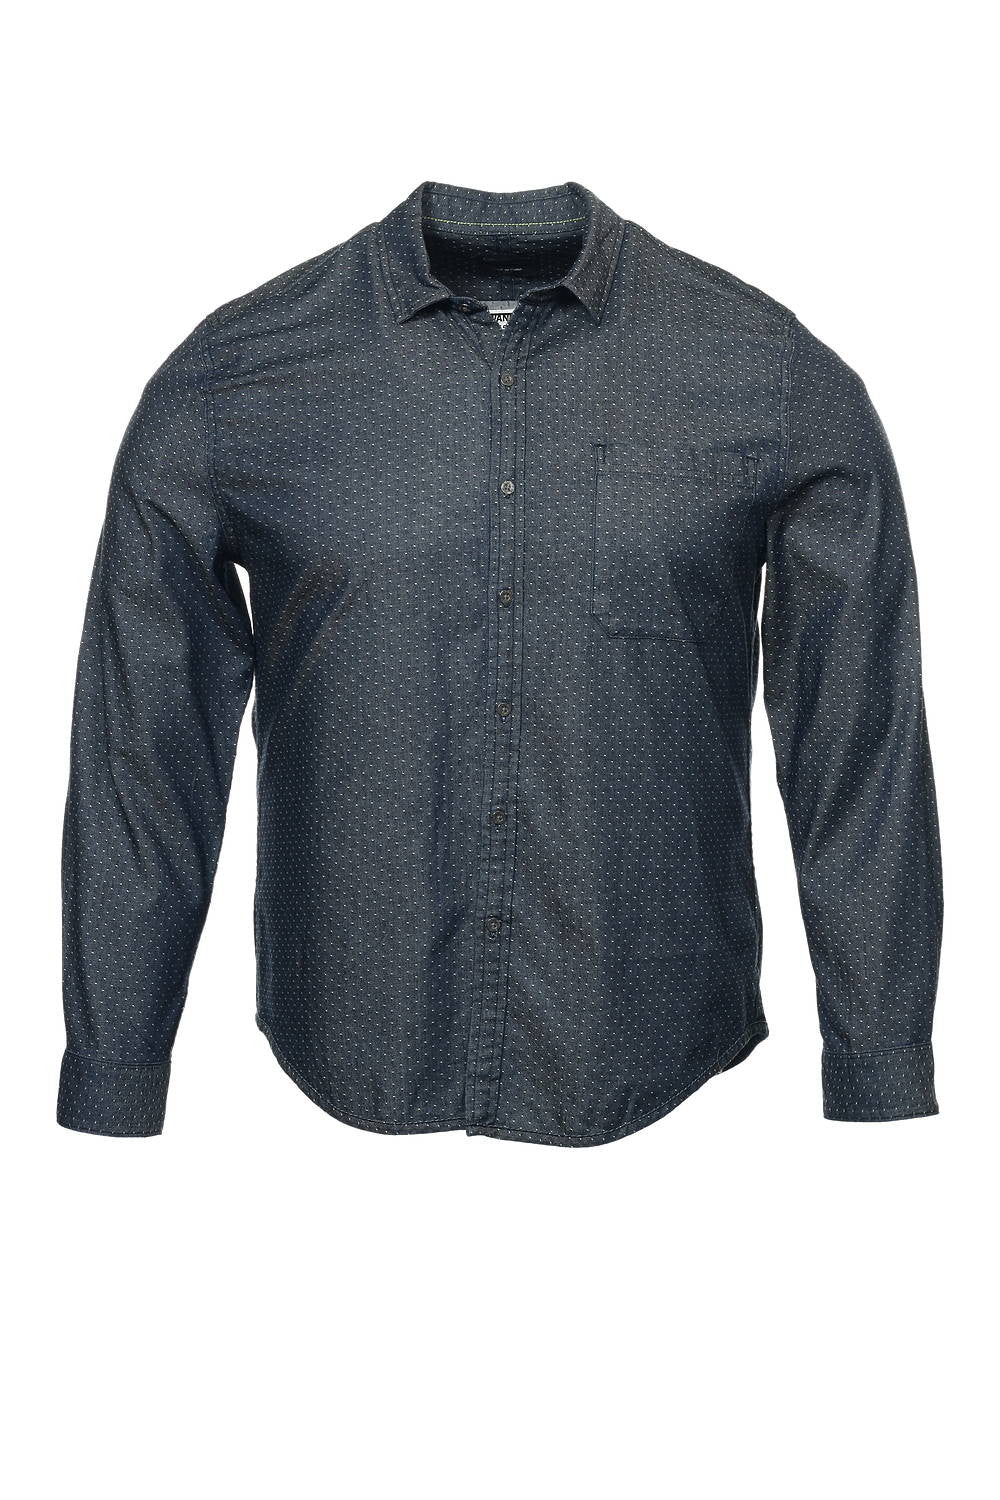 Calvin Klein Mens Blue Dotted Button Down Shirt